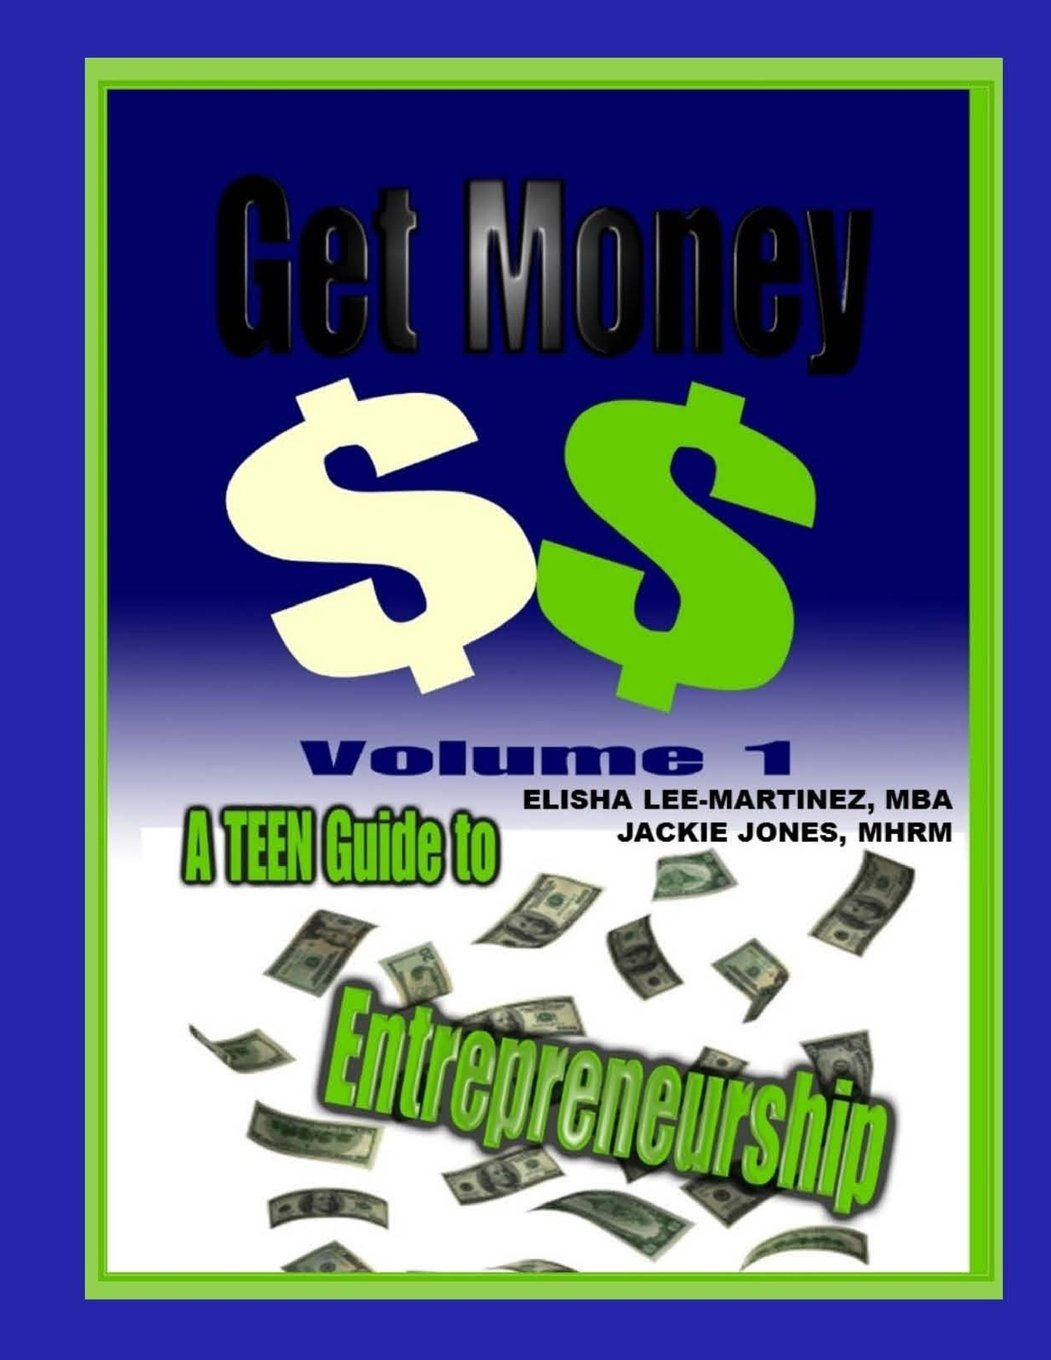 Get Money: A Teenager's Guide to Entrepreneurship Instructor Guide (Instructor's Guide) (Volume 1) ebook